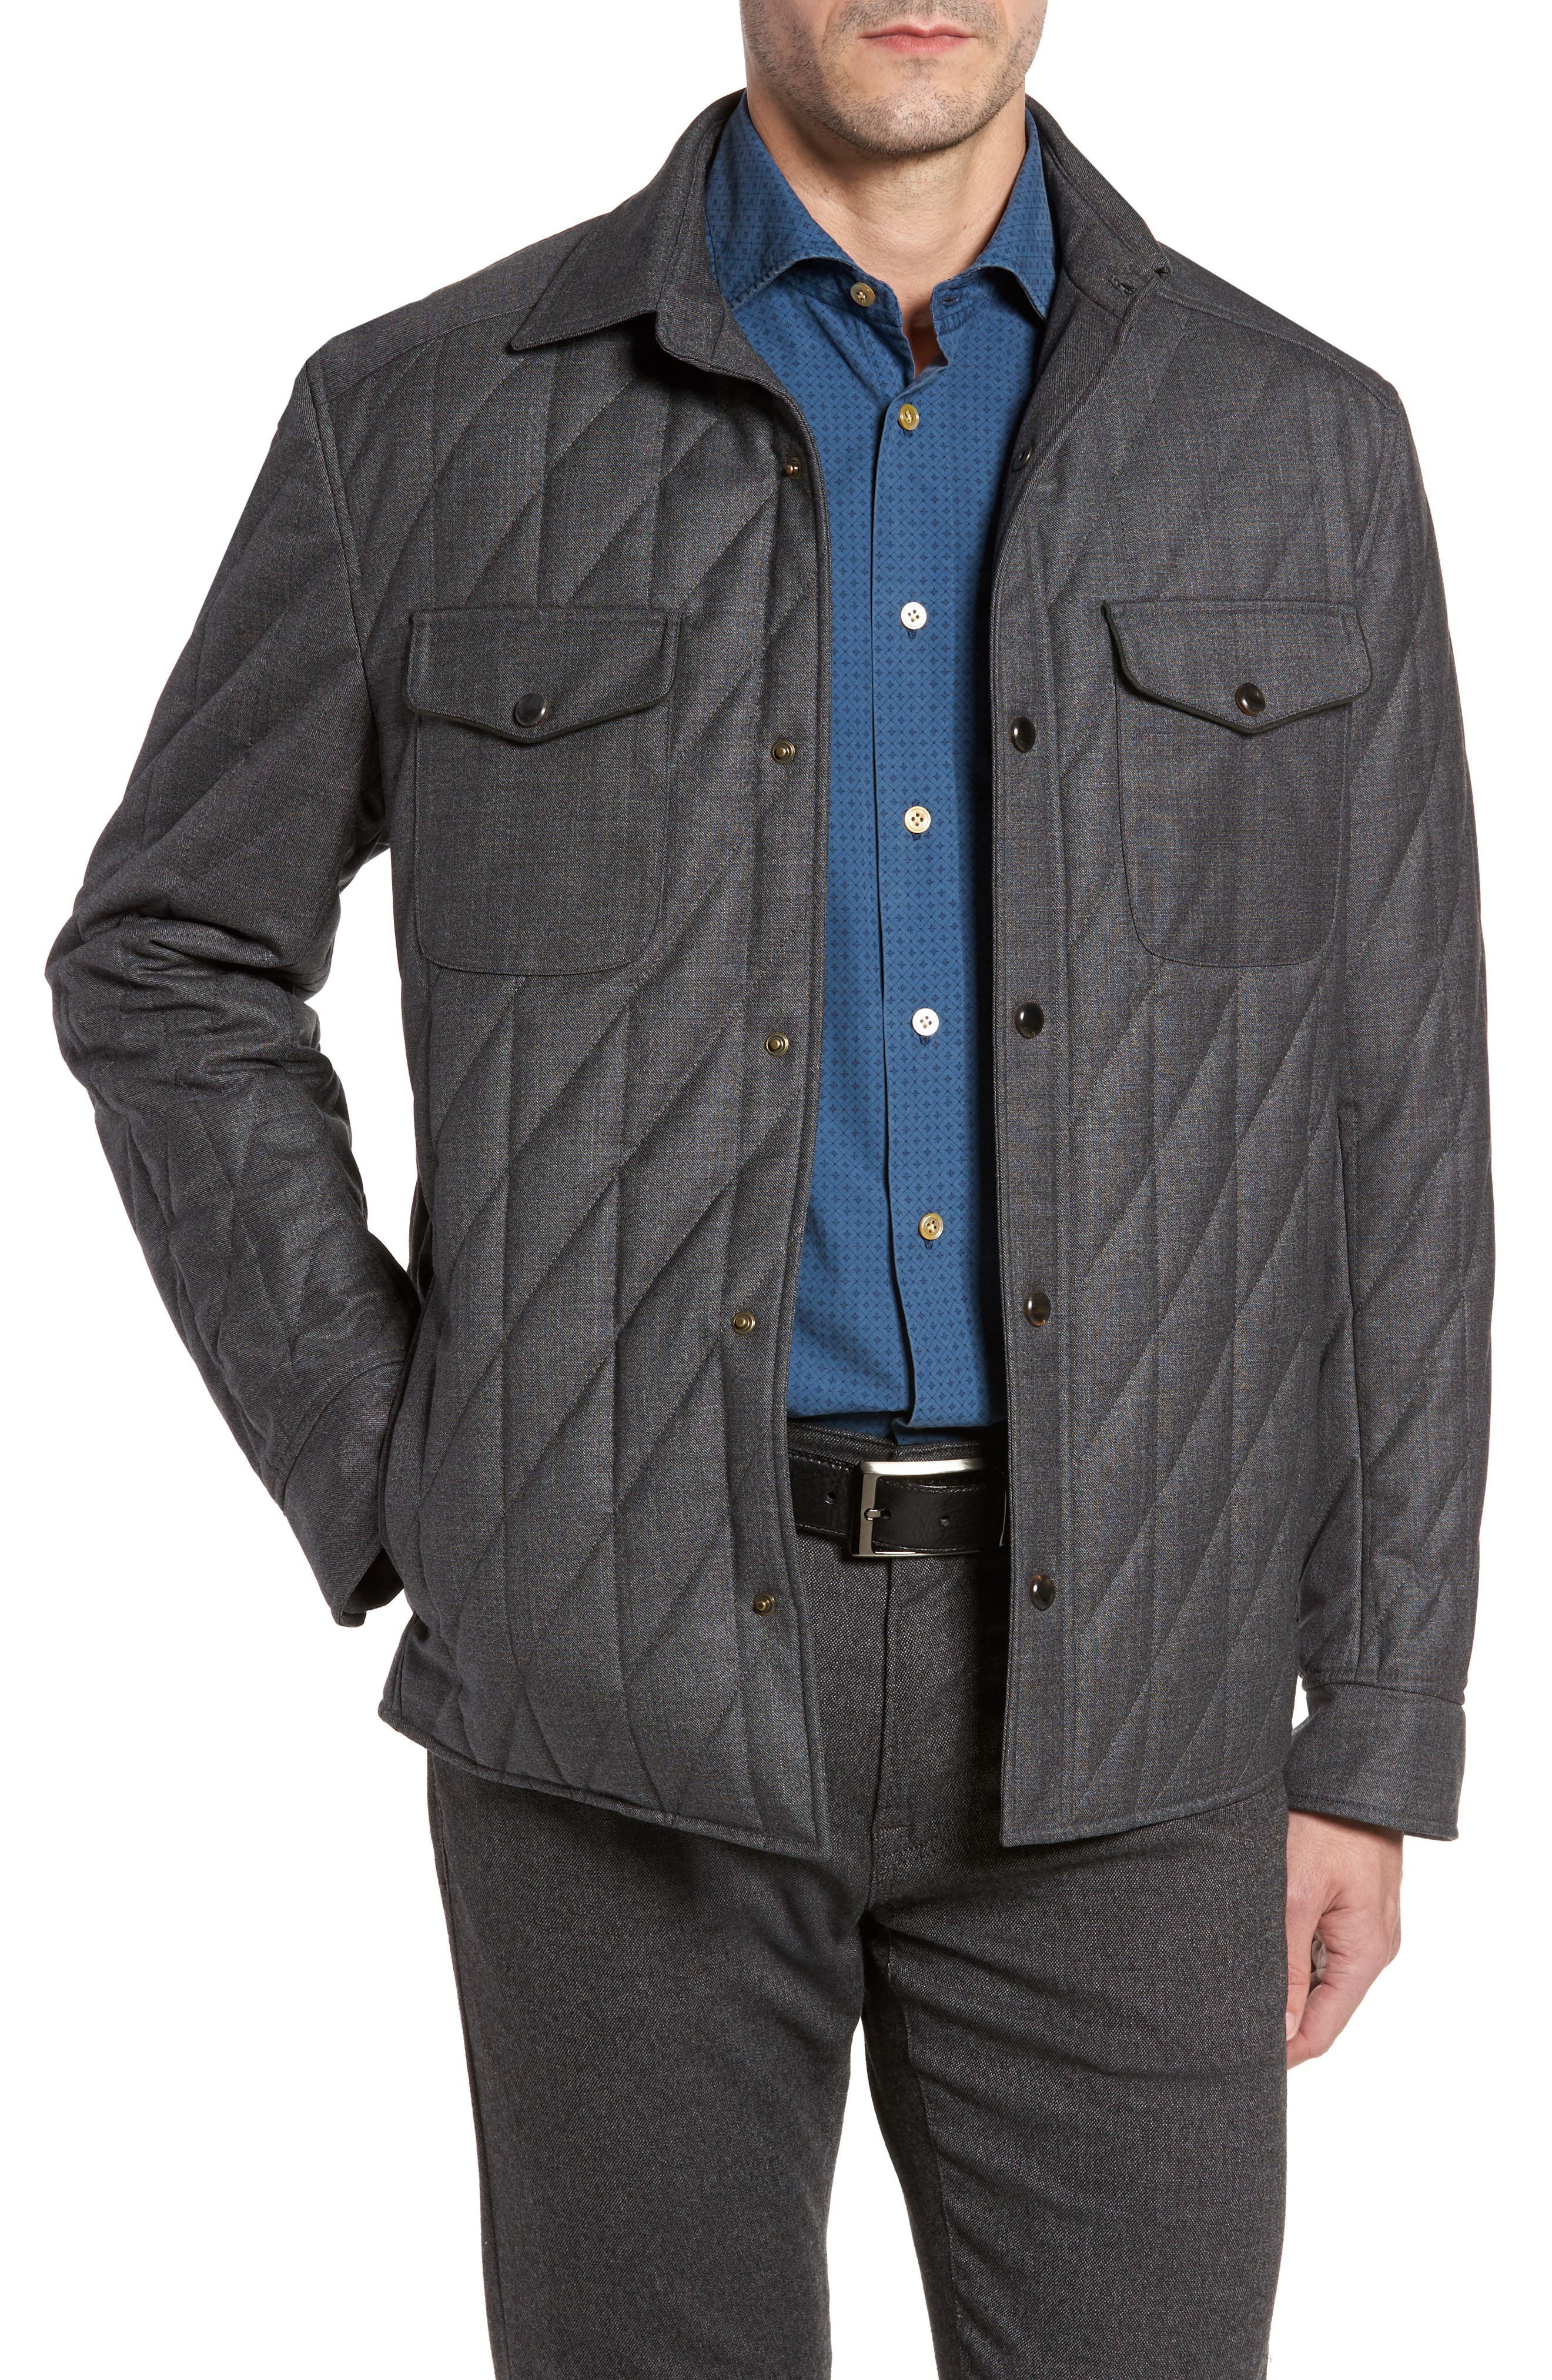 Main Image - Luciano Barbera Classic Fit Quilted Wool Blend Shirt Jacket